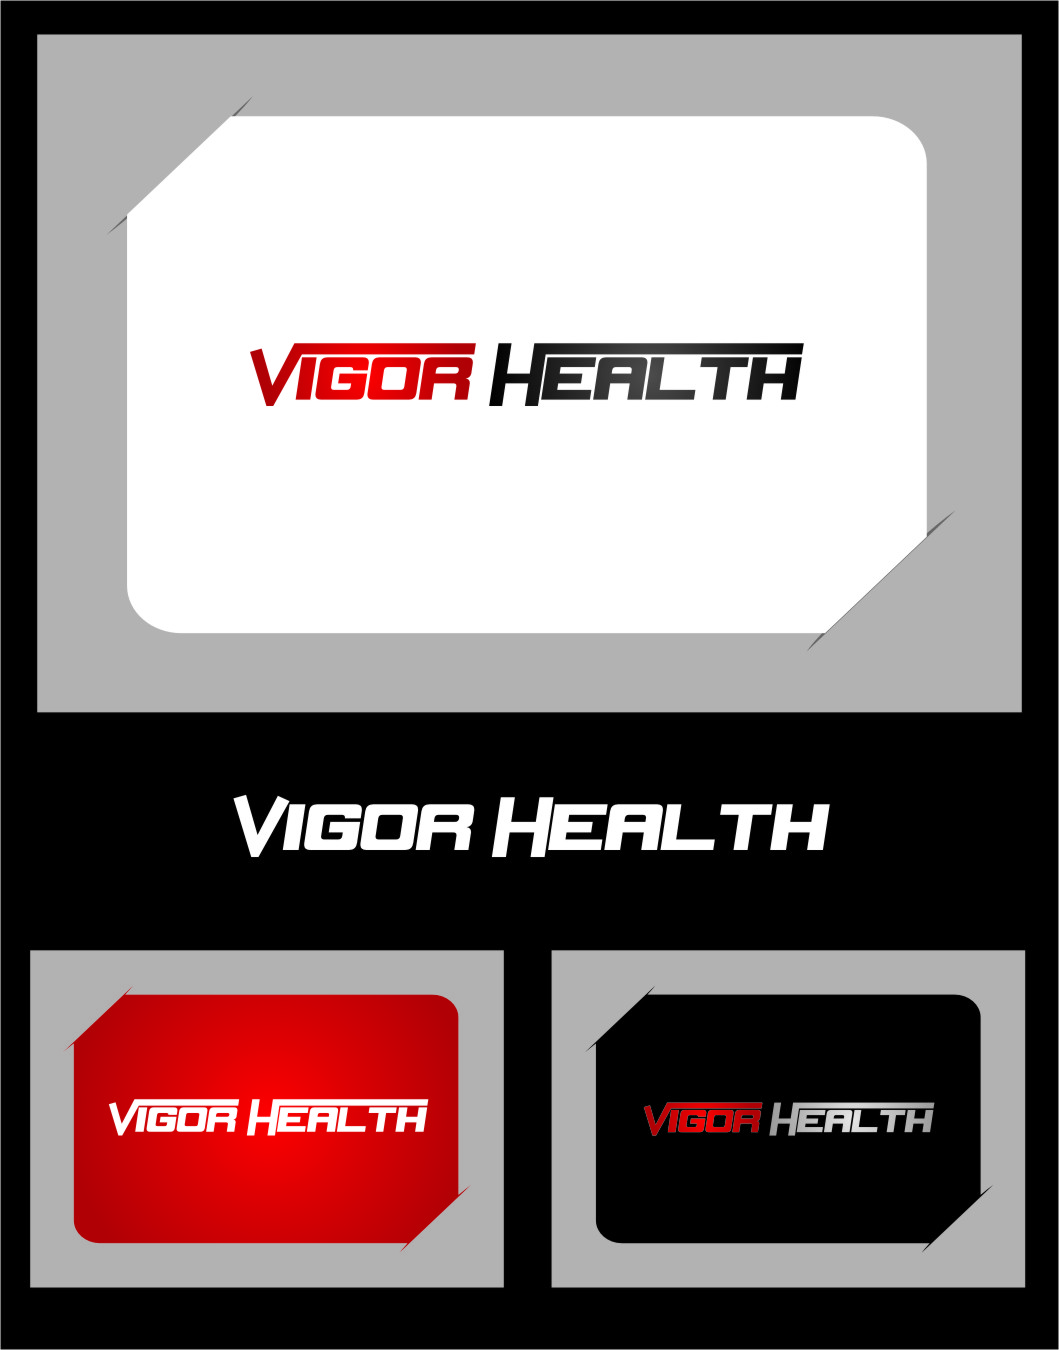 Custom Design by Ngepet_art - Entry No. 31 in the Custom Design Contest New Custom Design for Vigor Health Ltd..